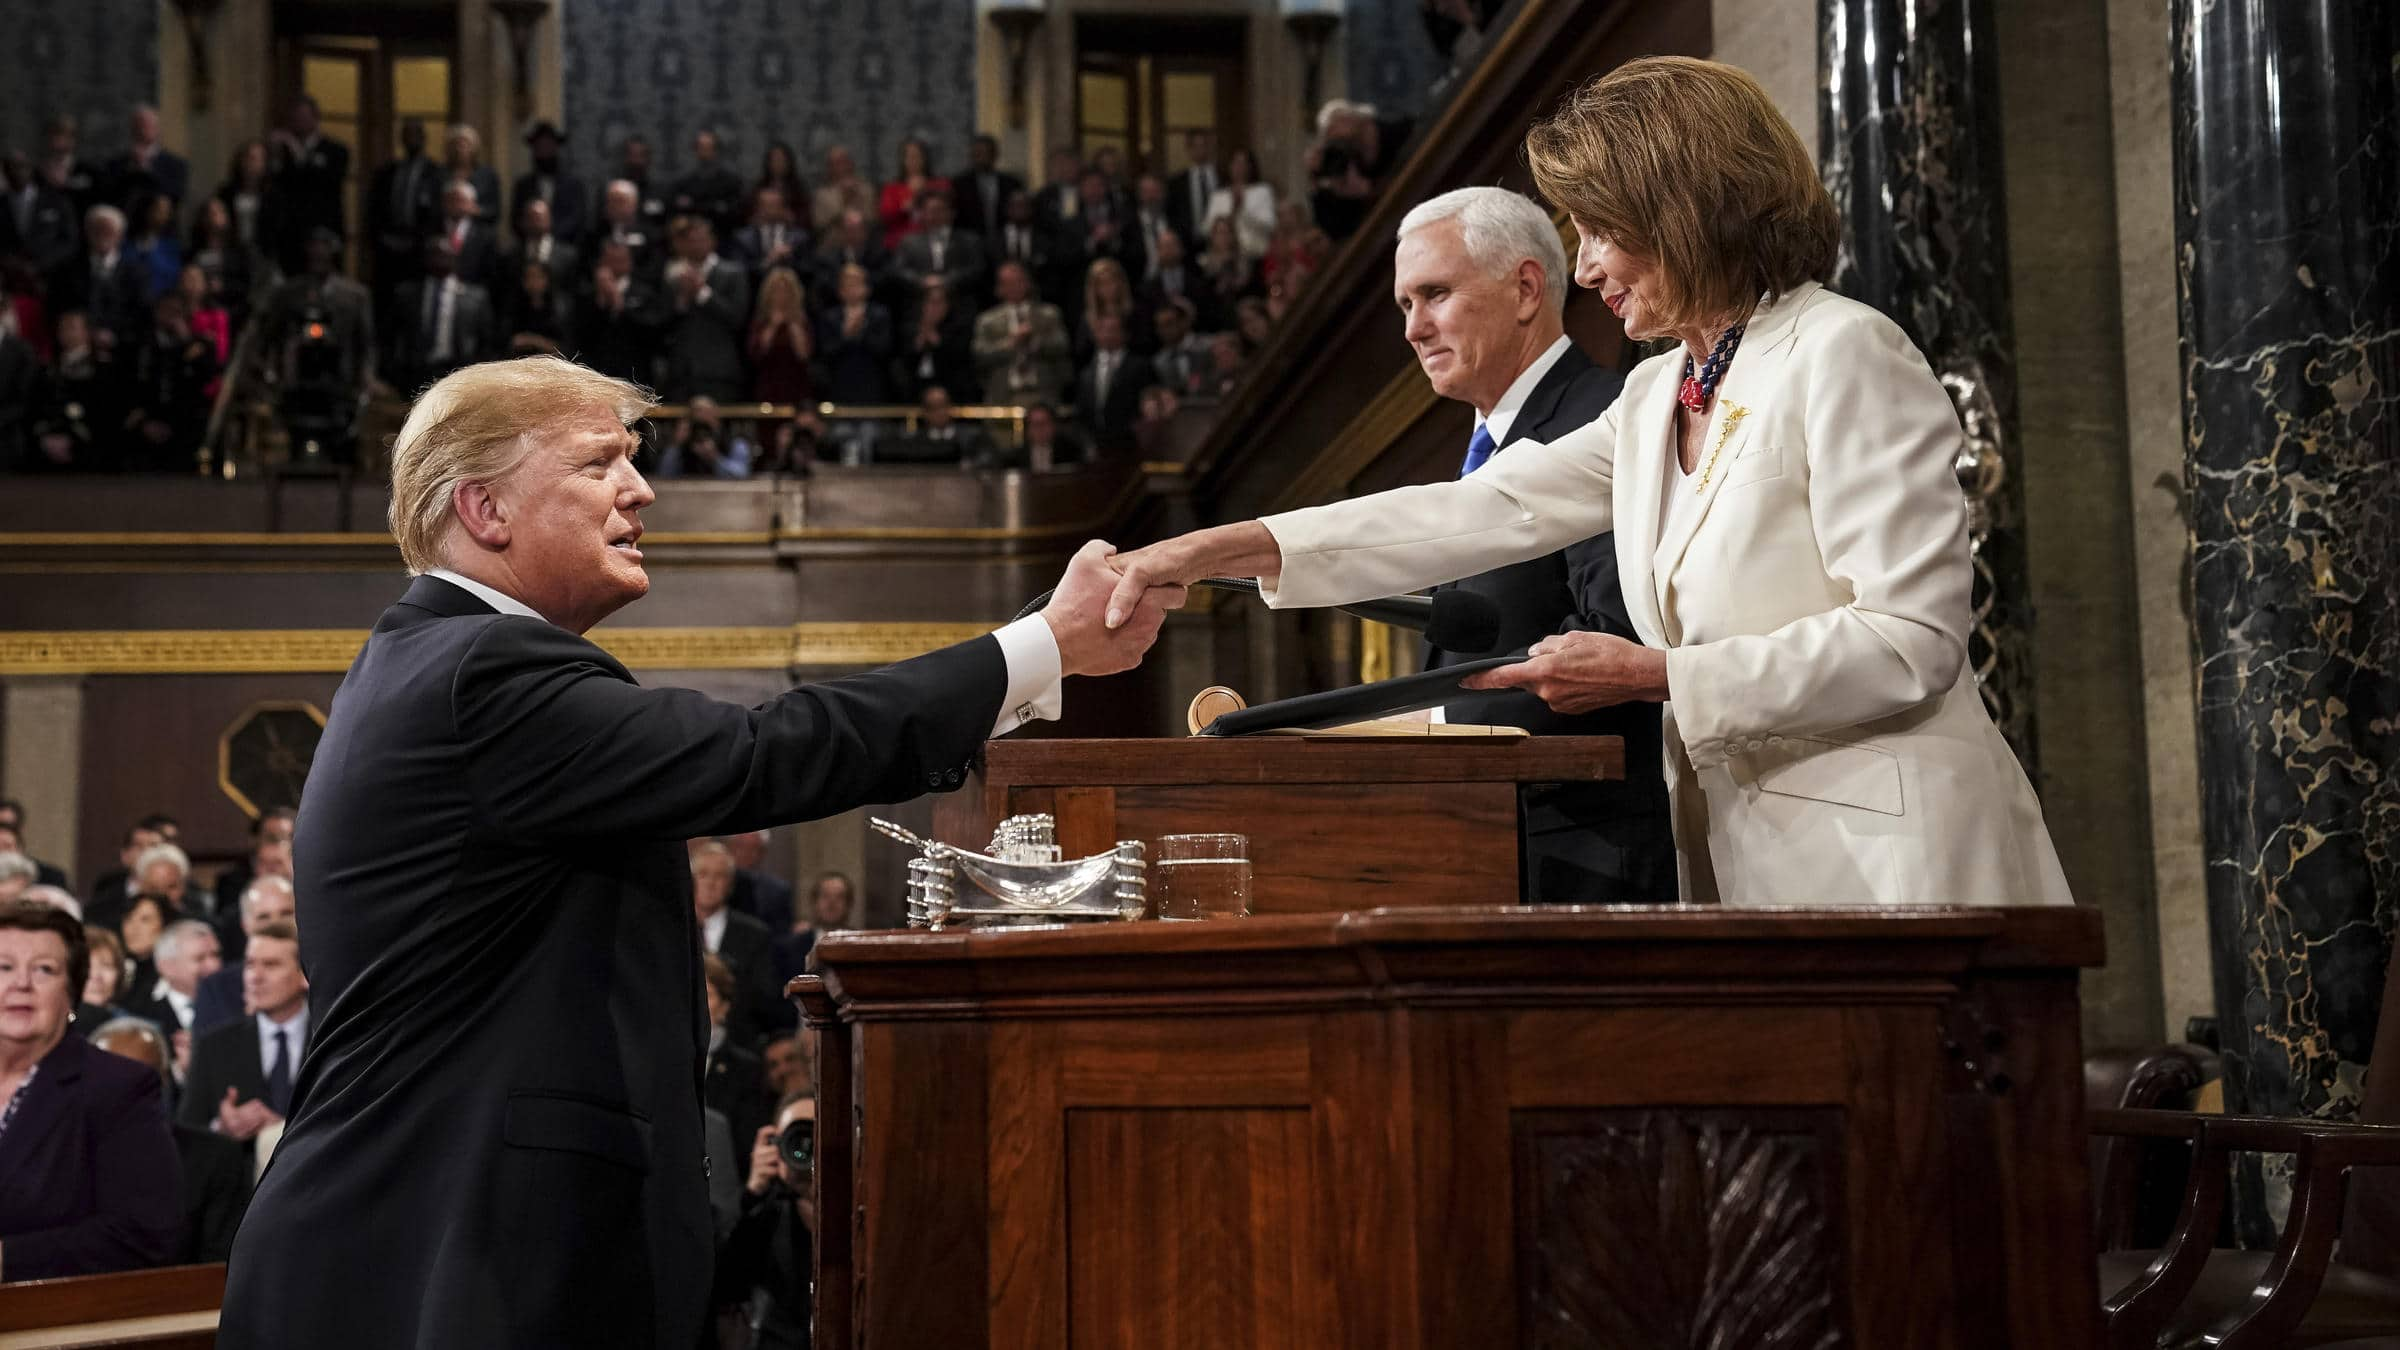 What matters most in the battle between Trump and Pelosi